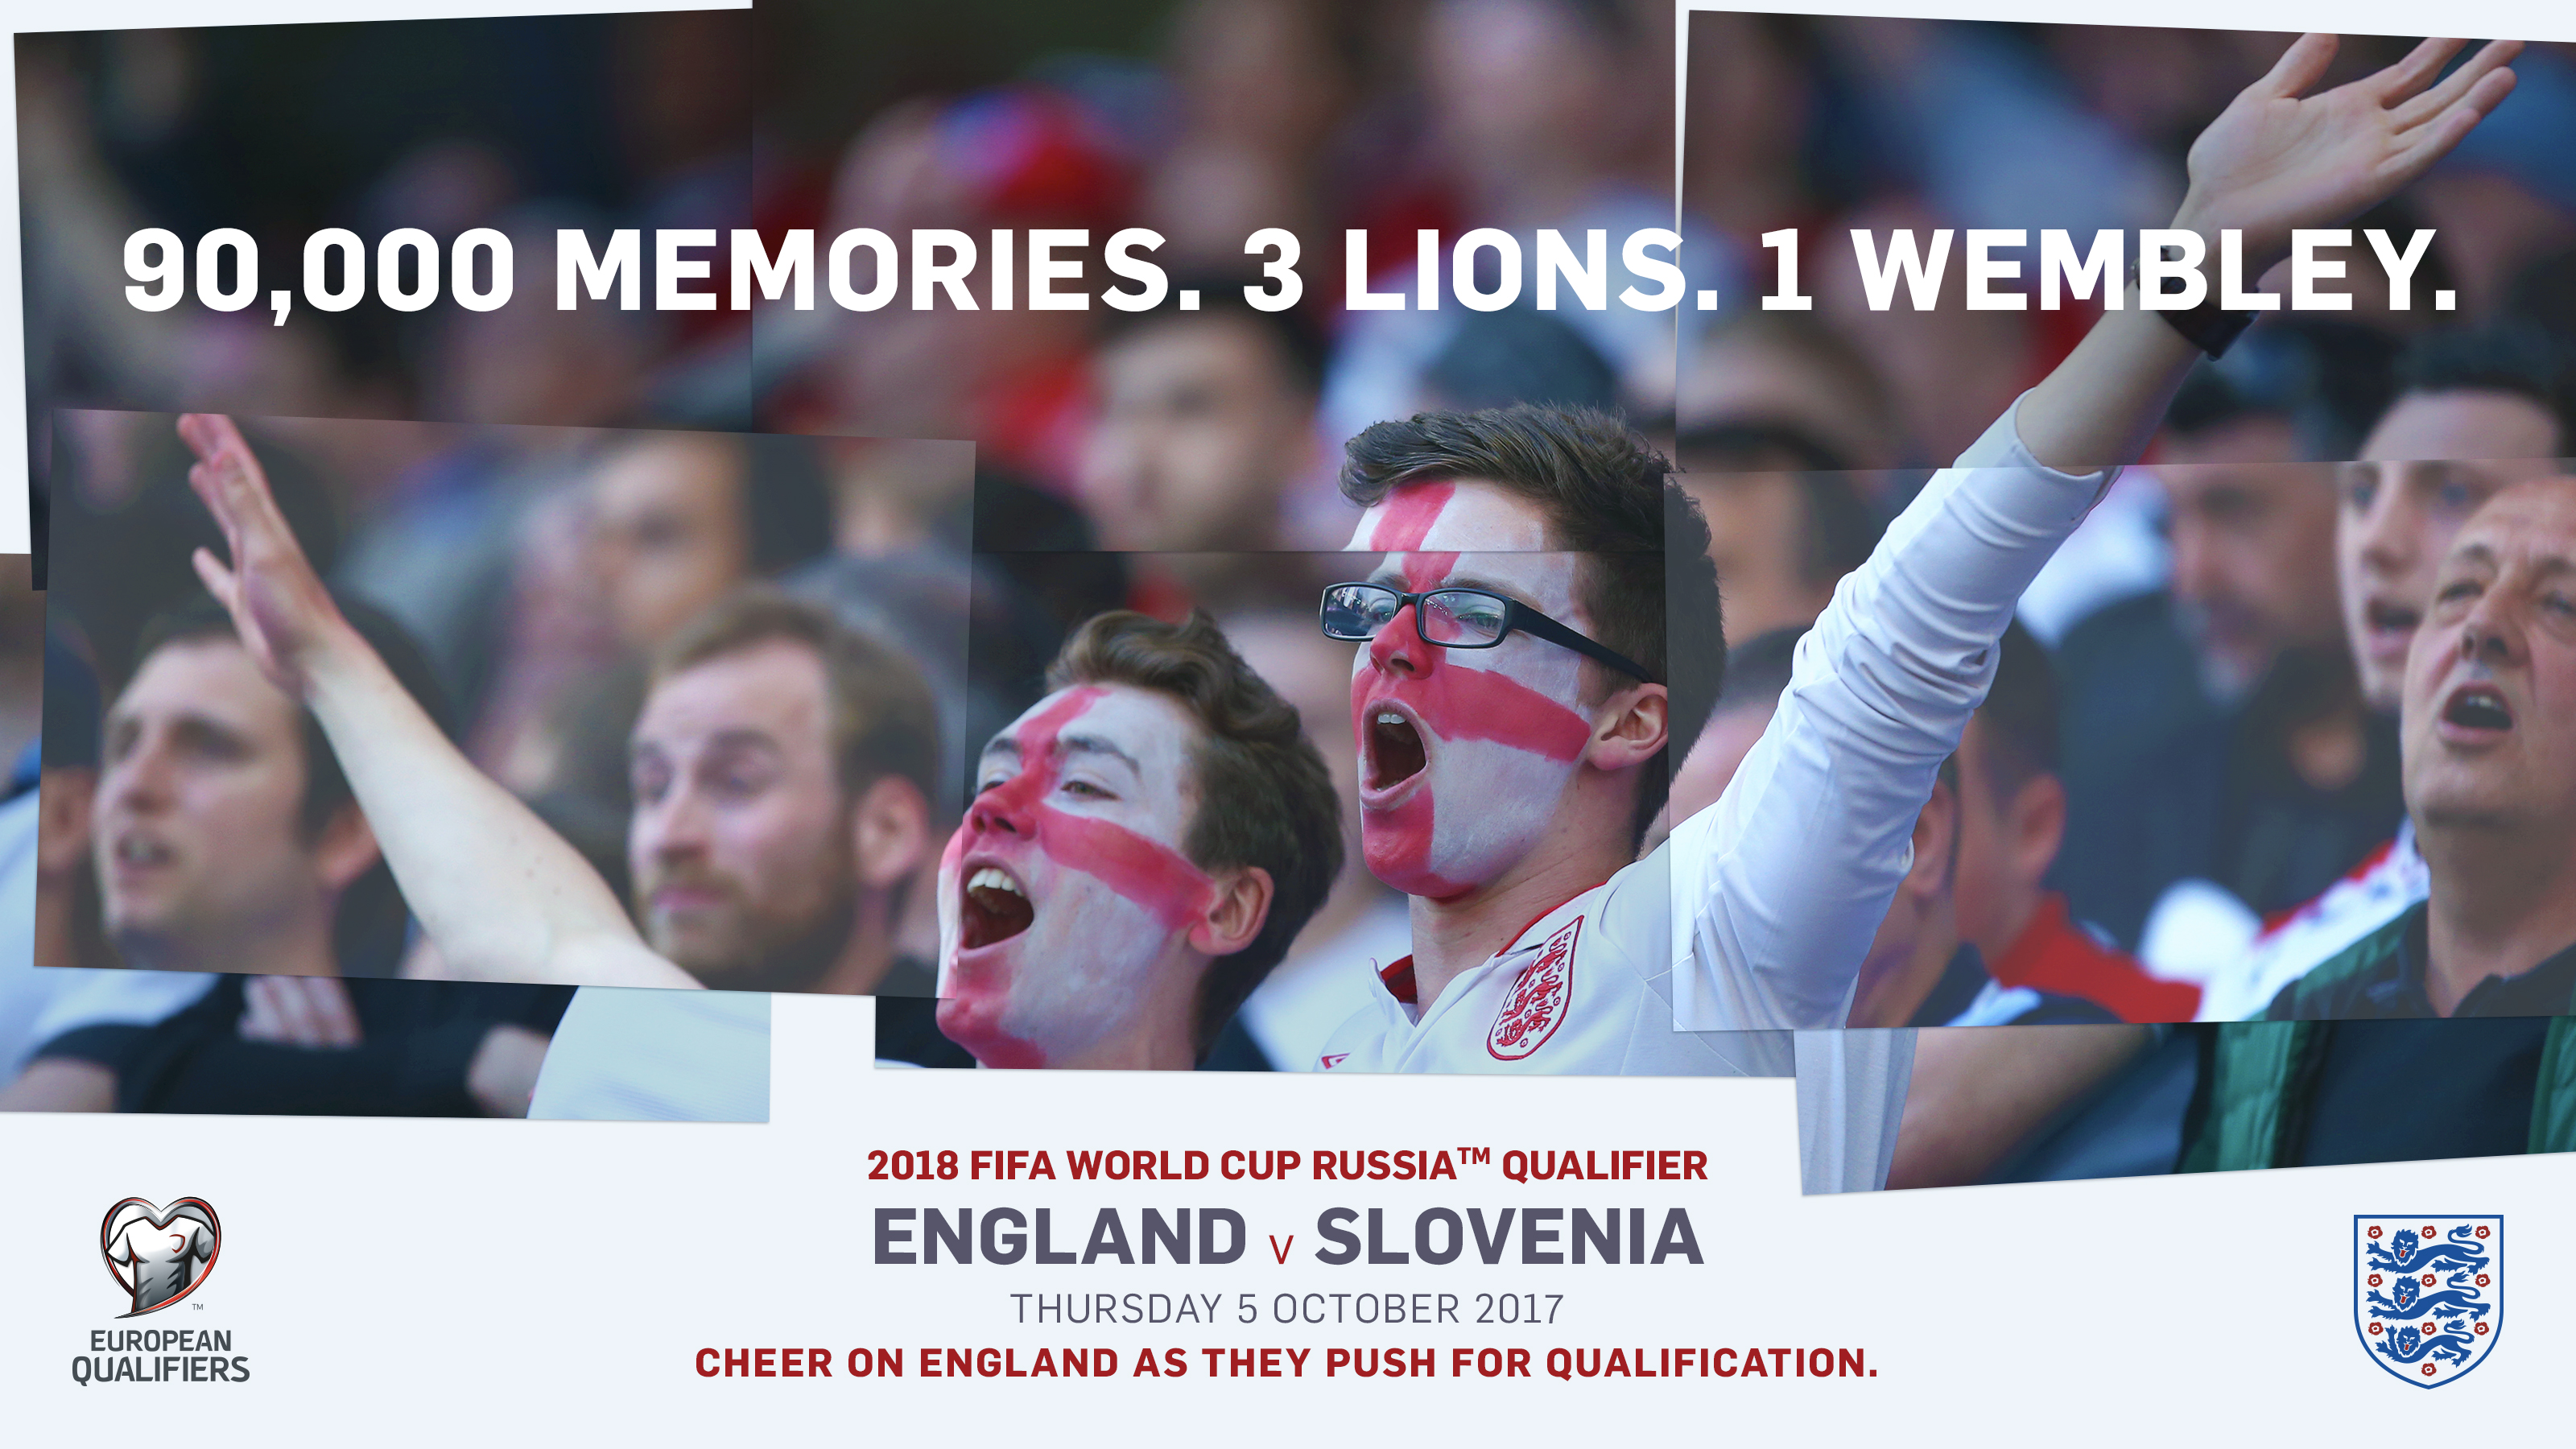 England v Slovenia Tickets now on sale